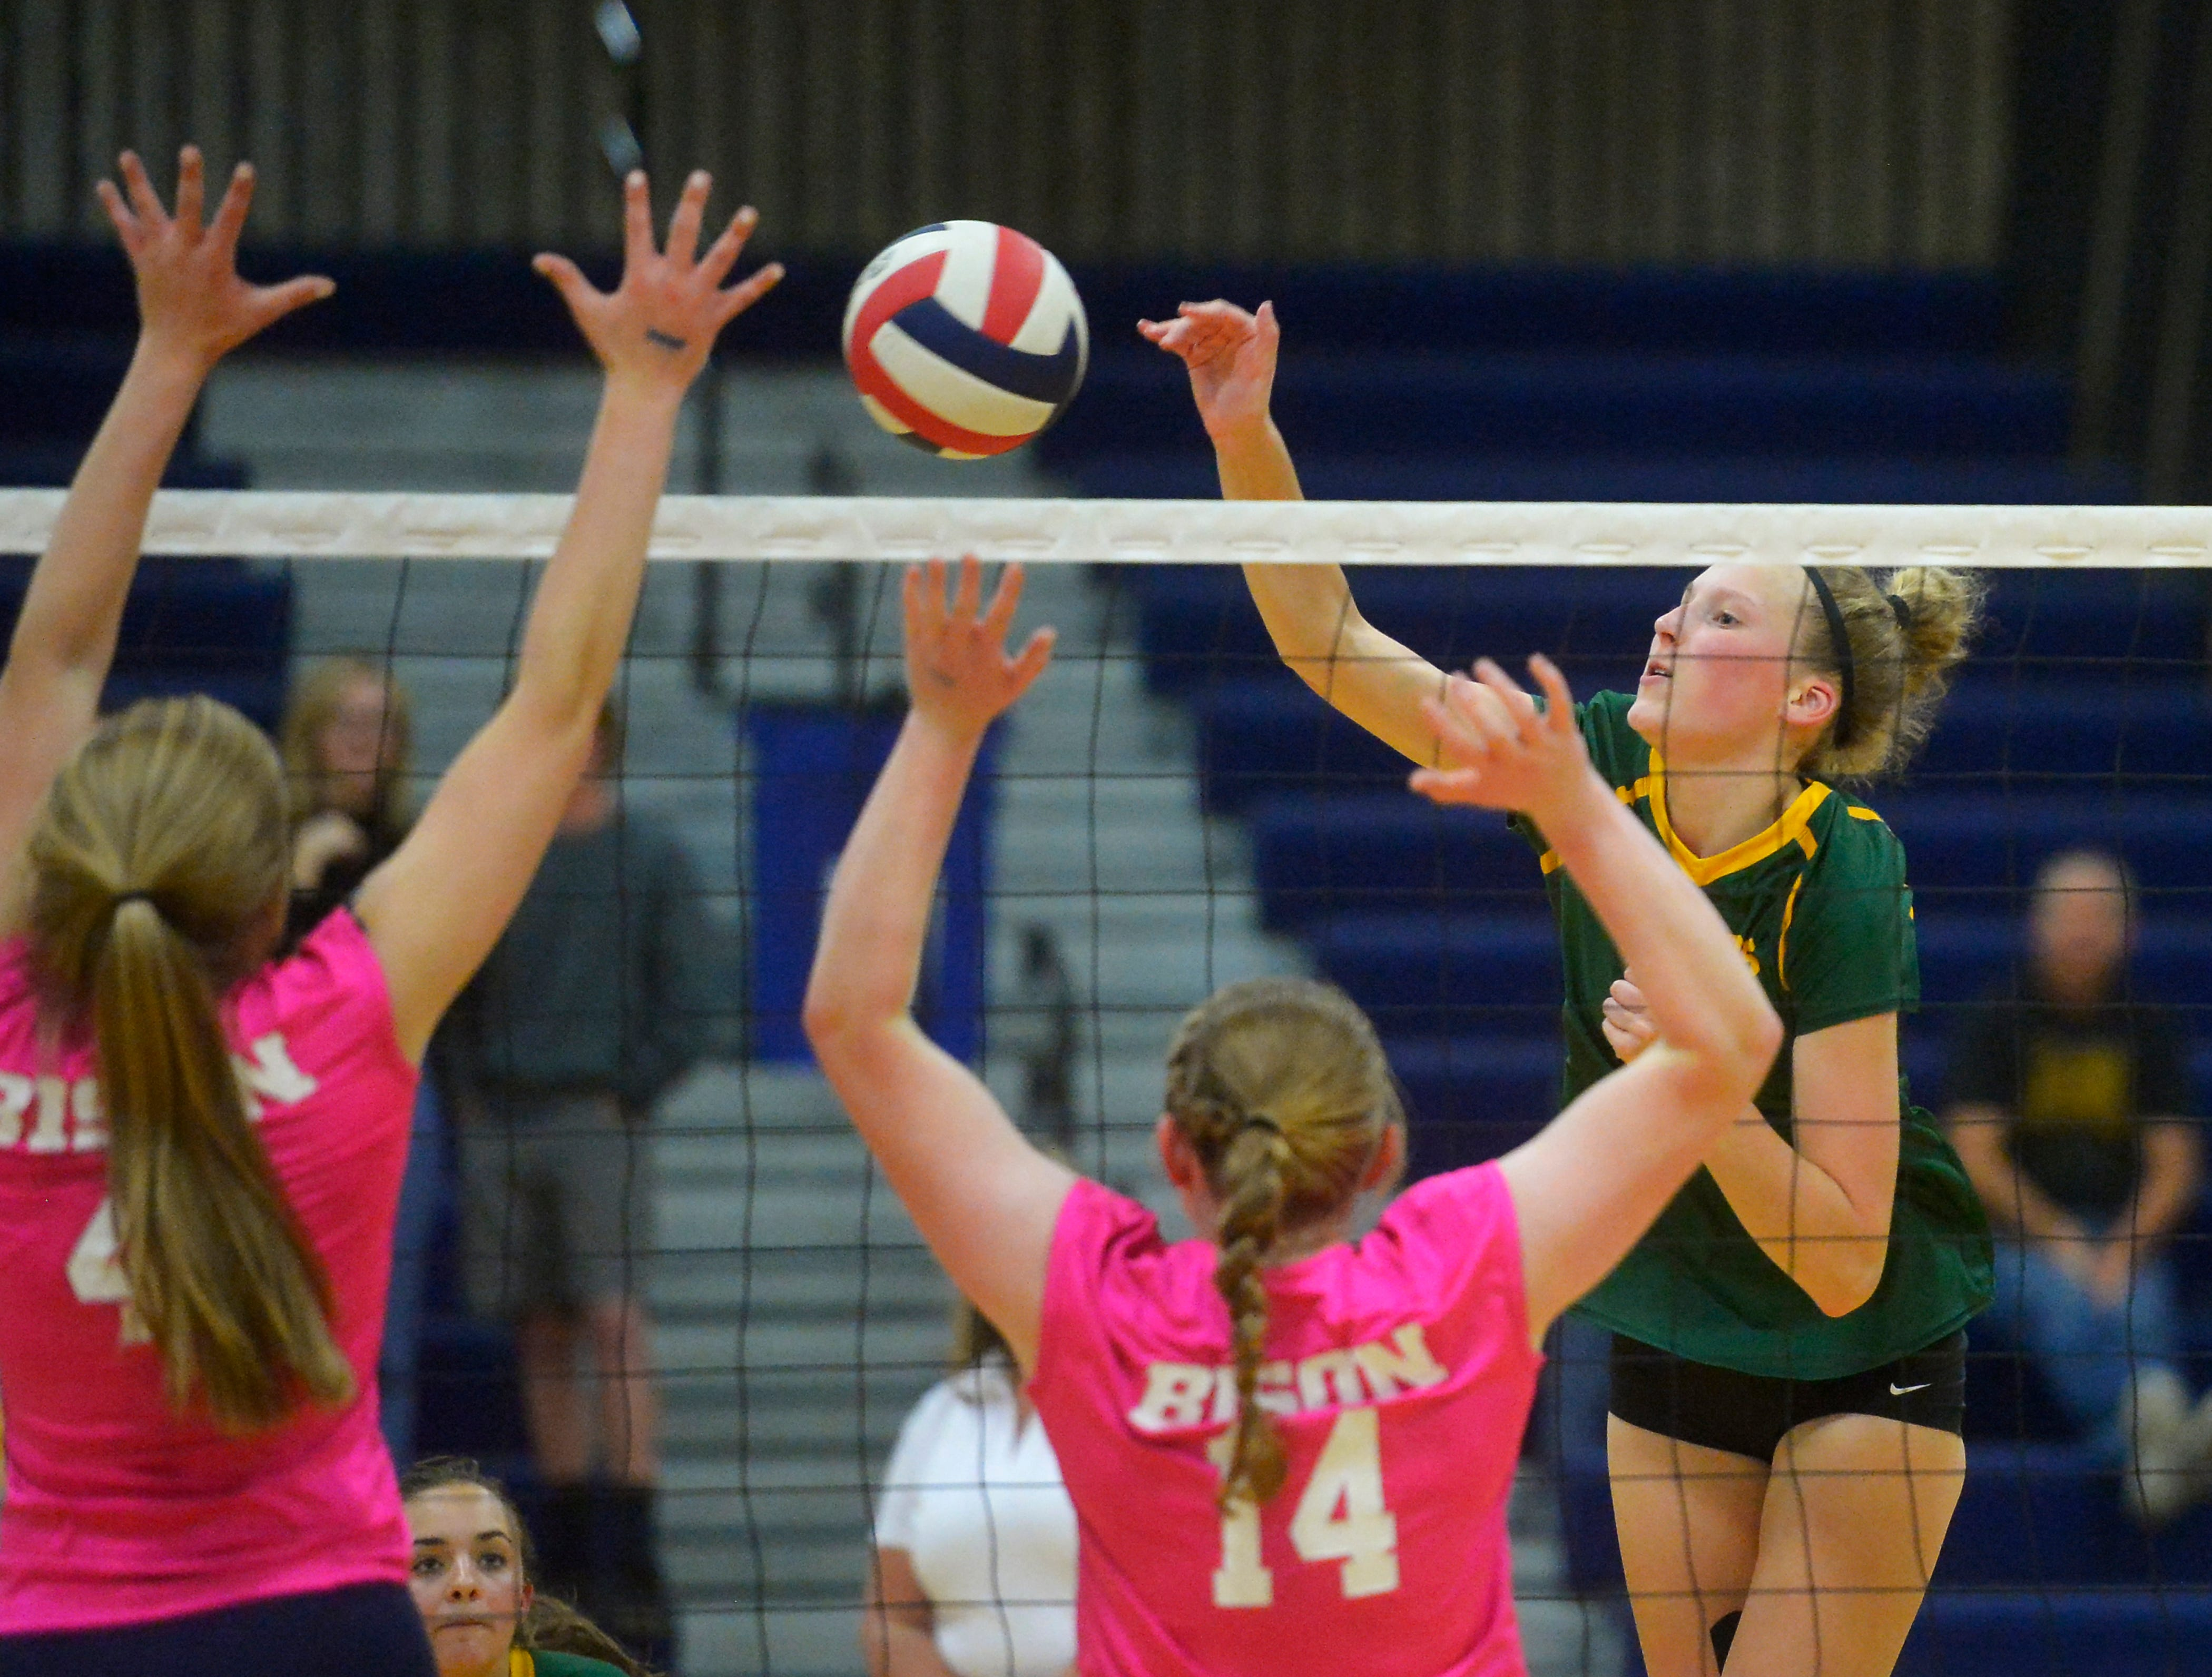 CMR's Allie Olsen spikes during the crosstown volleyball match in the Swarthout Fieldhouse, Tuesday.